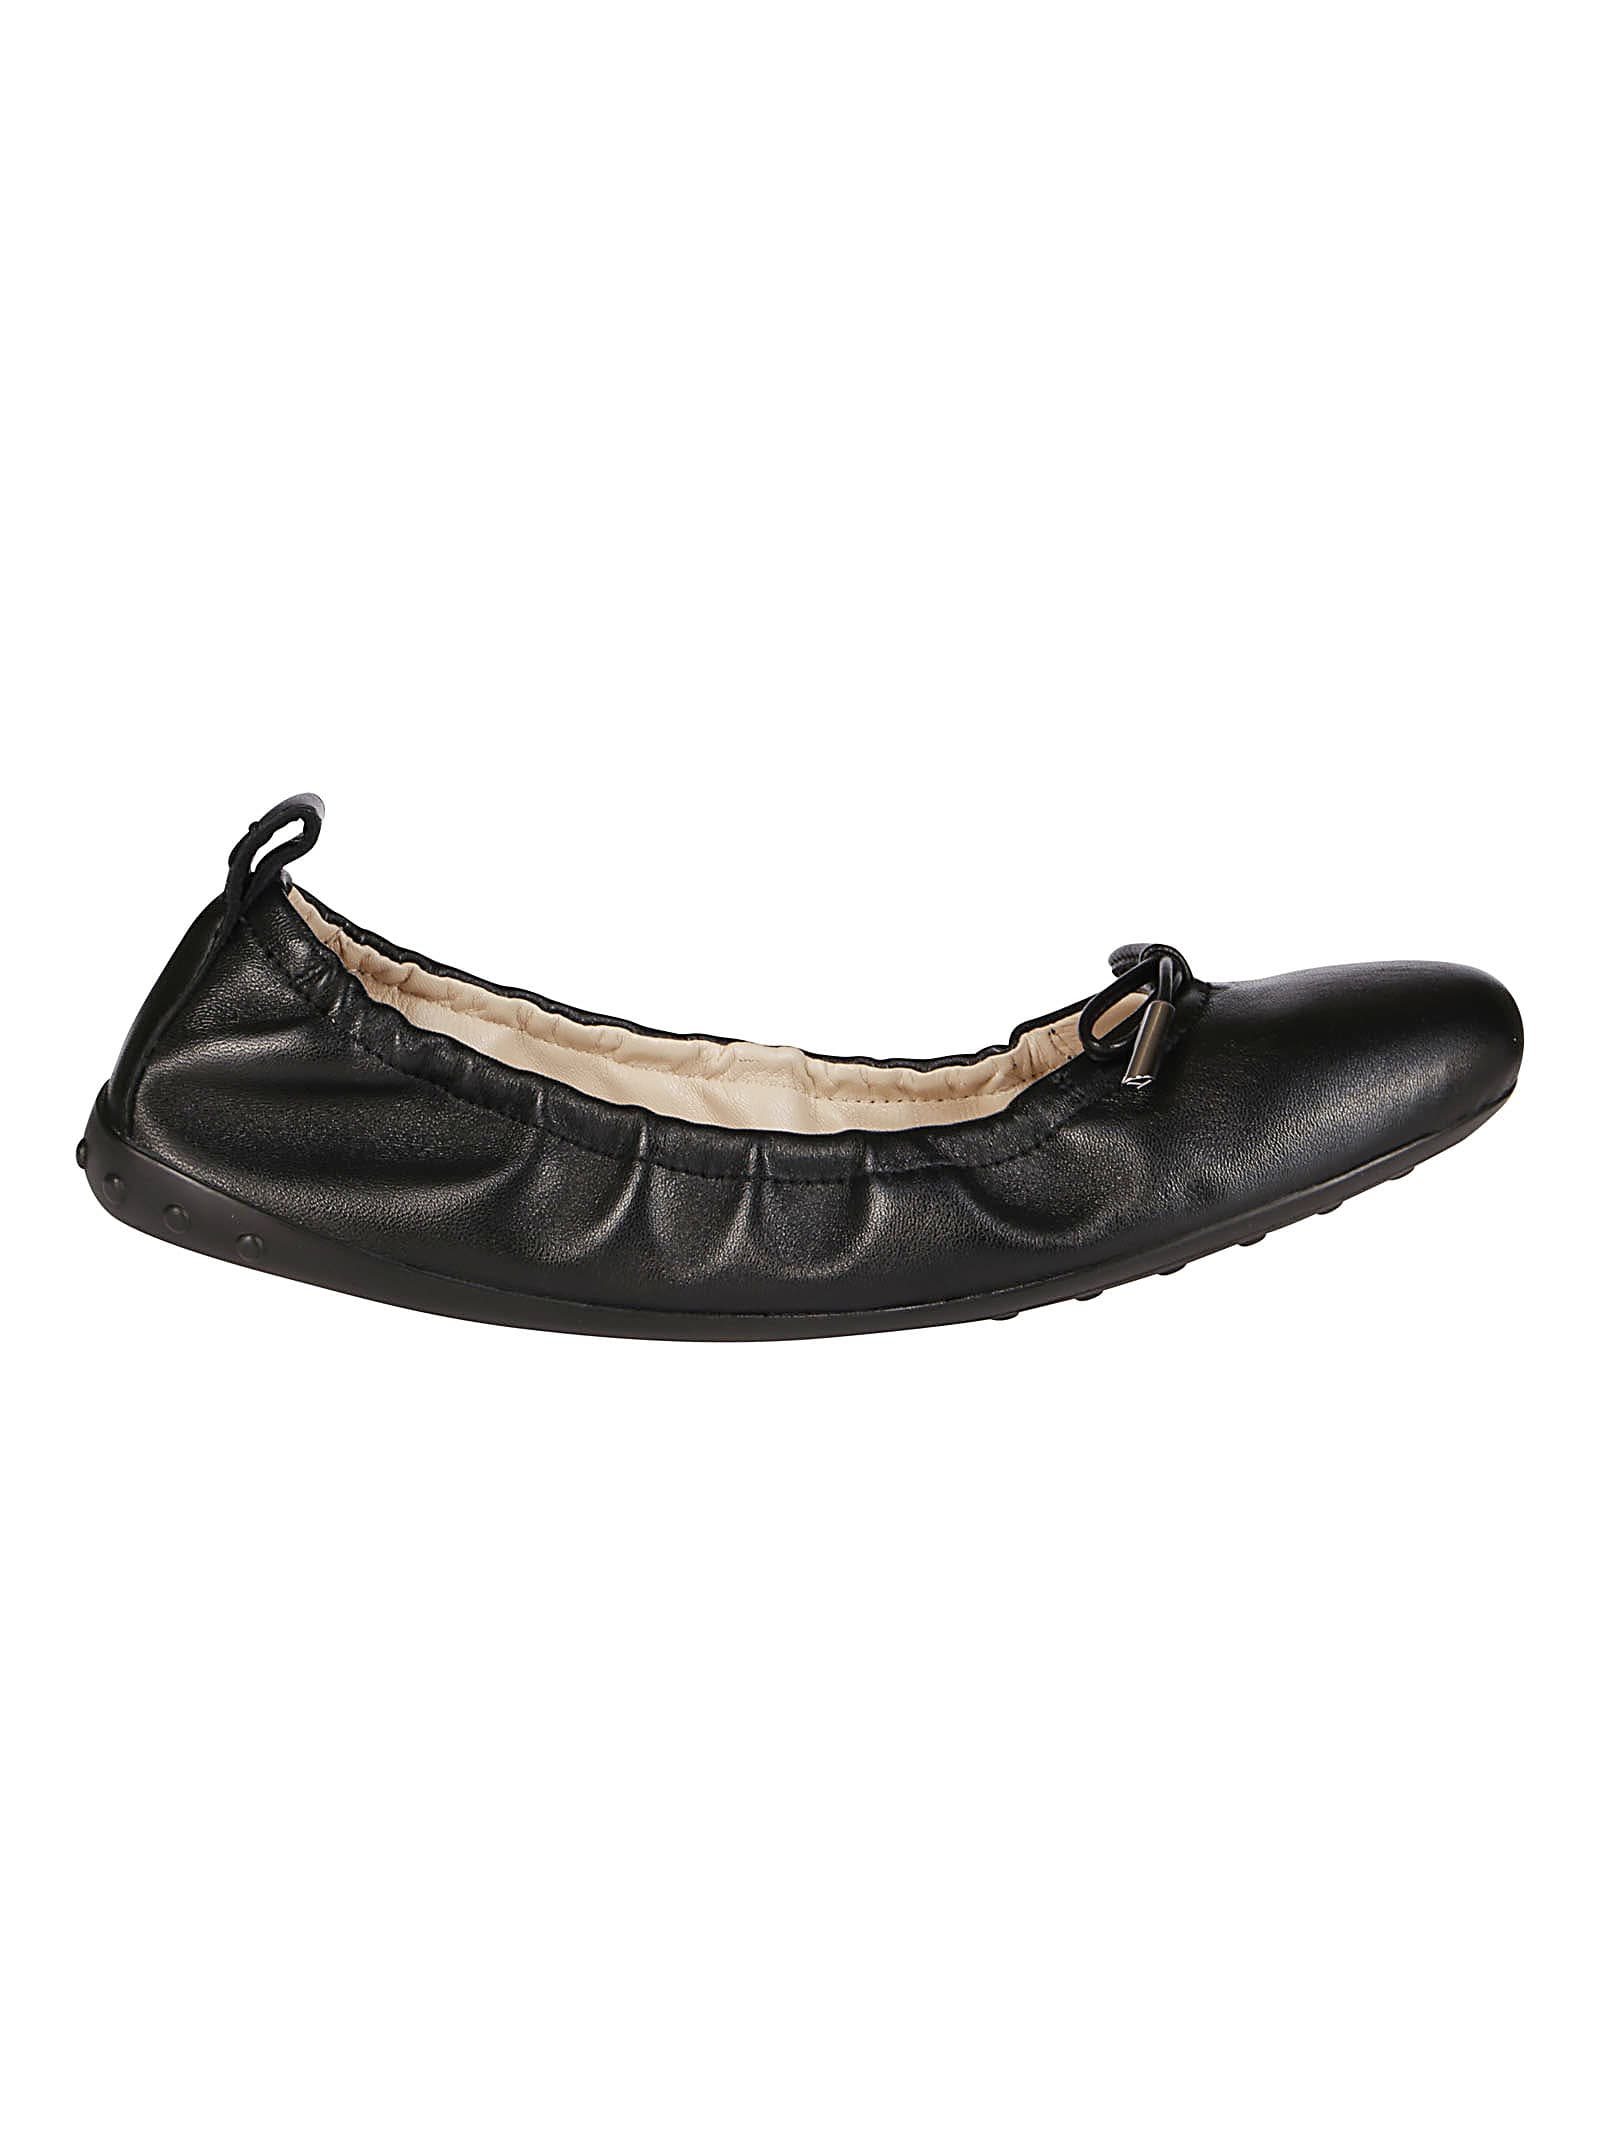 Tods Black Leather Ballerinas